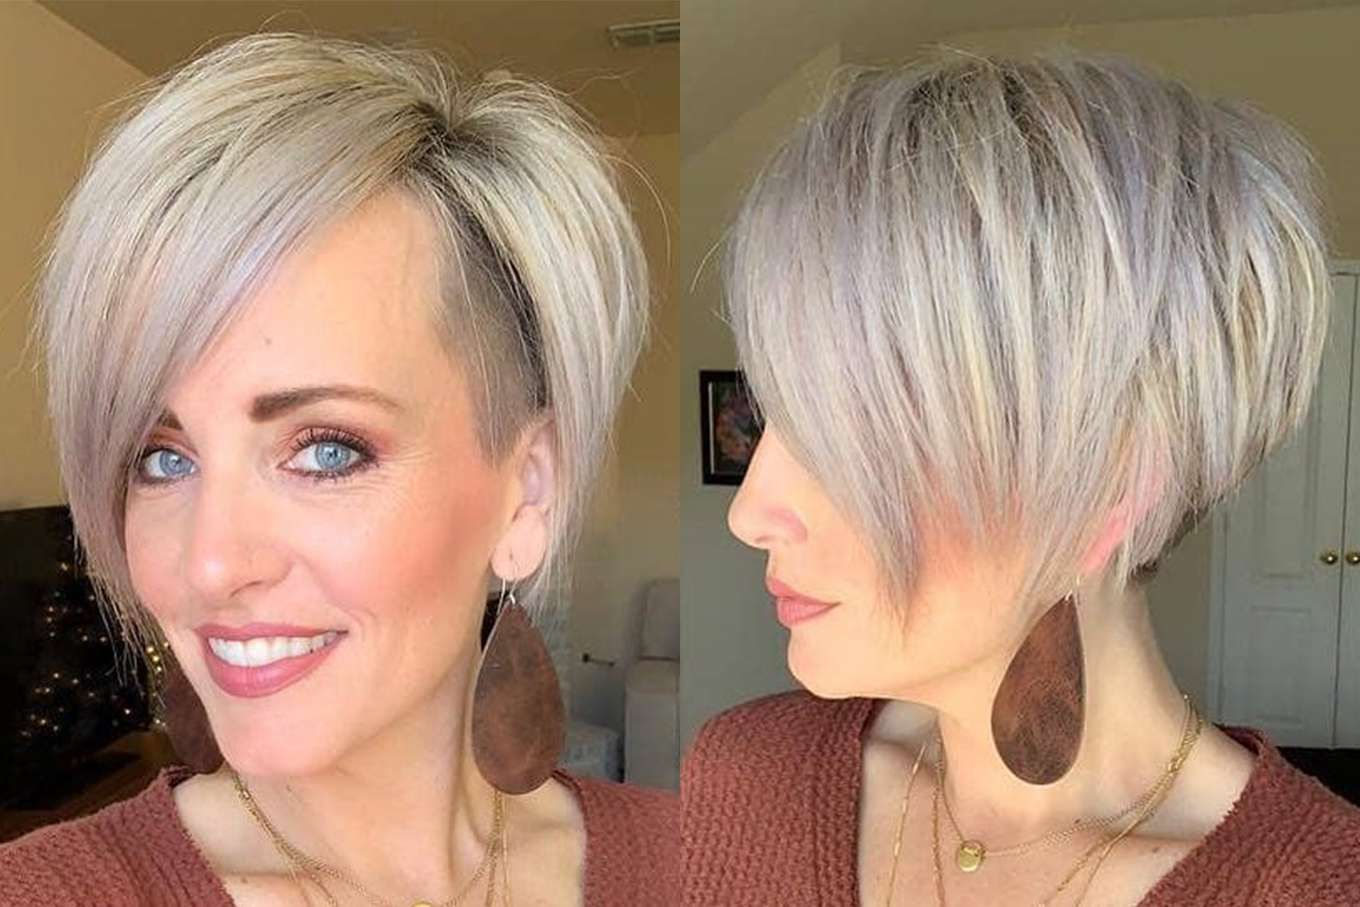 Haley Young Short Hairstyles 1 Short Hairstyles For Thick Hair Short Hair Styles Thick Hair Styles